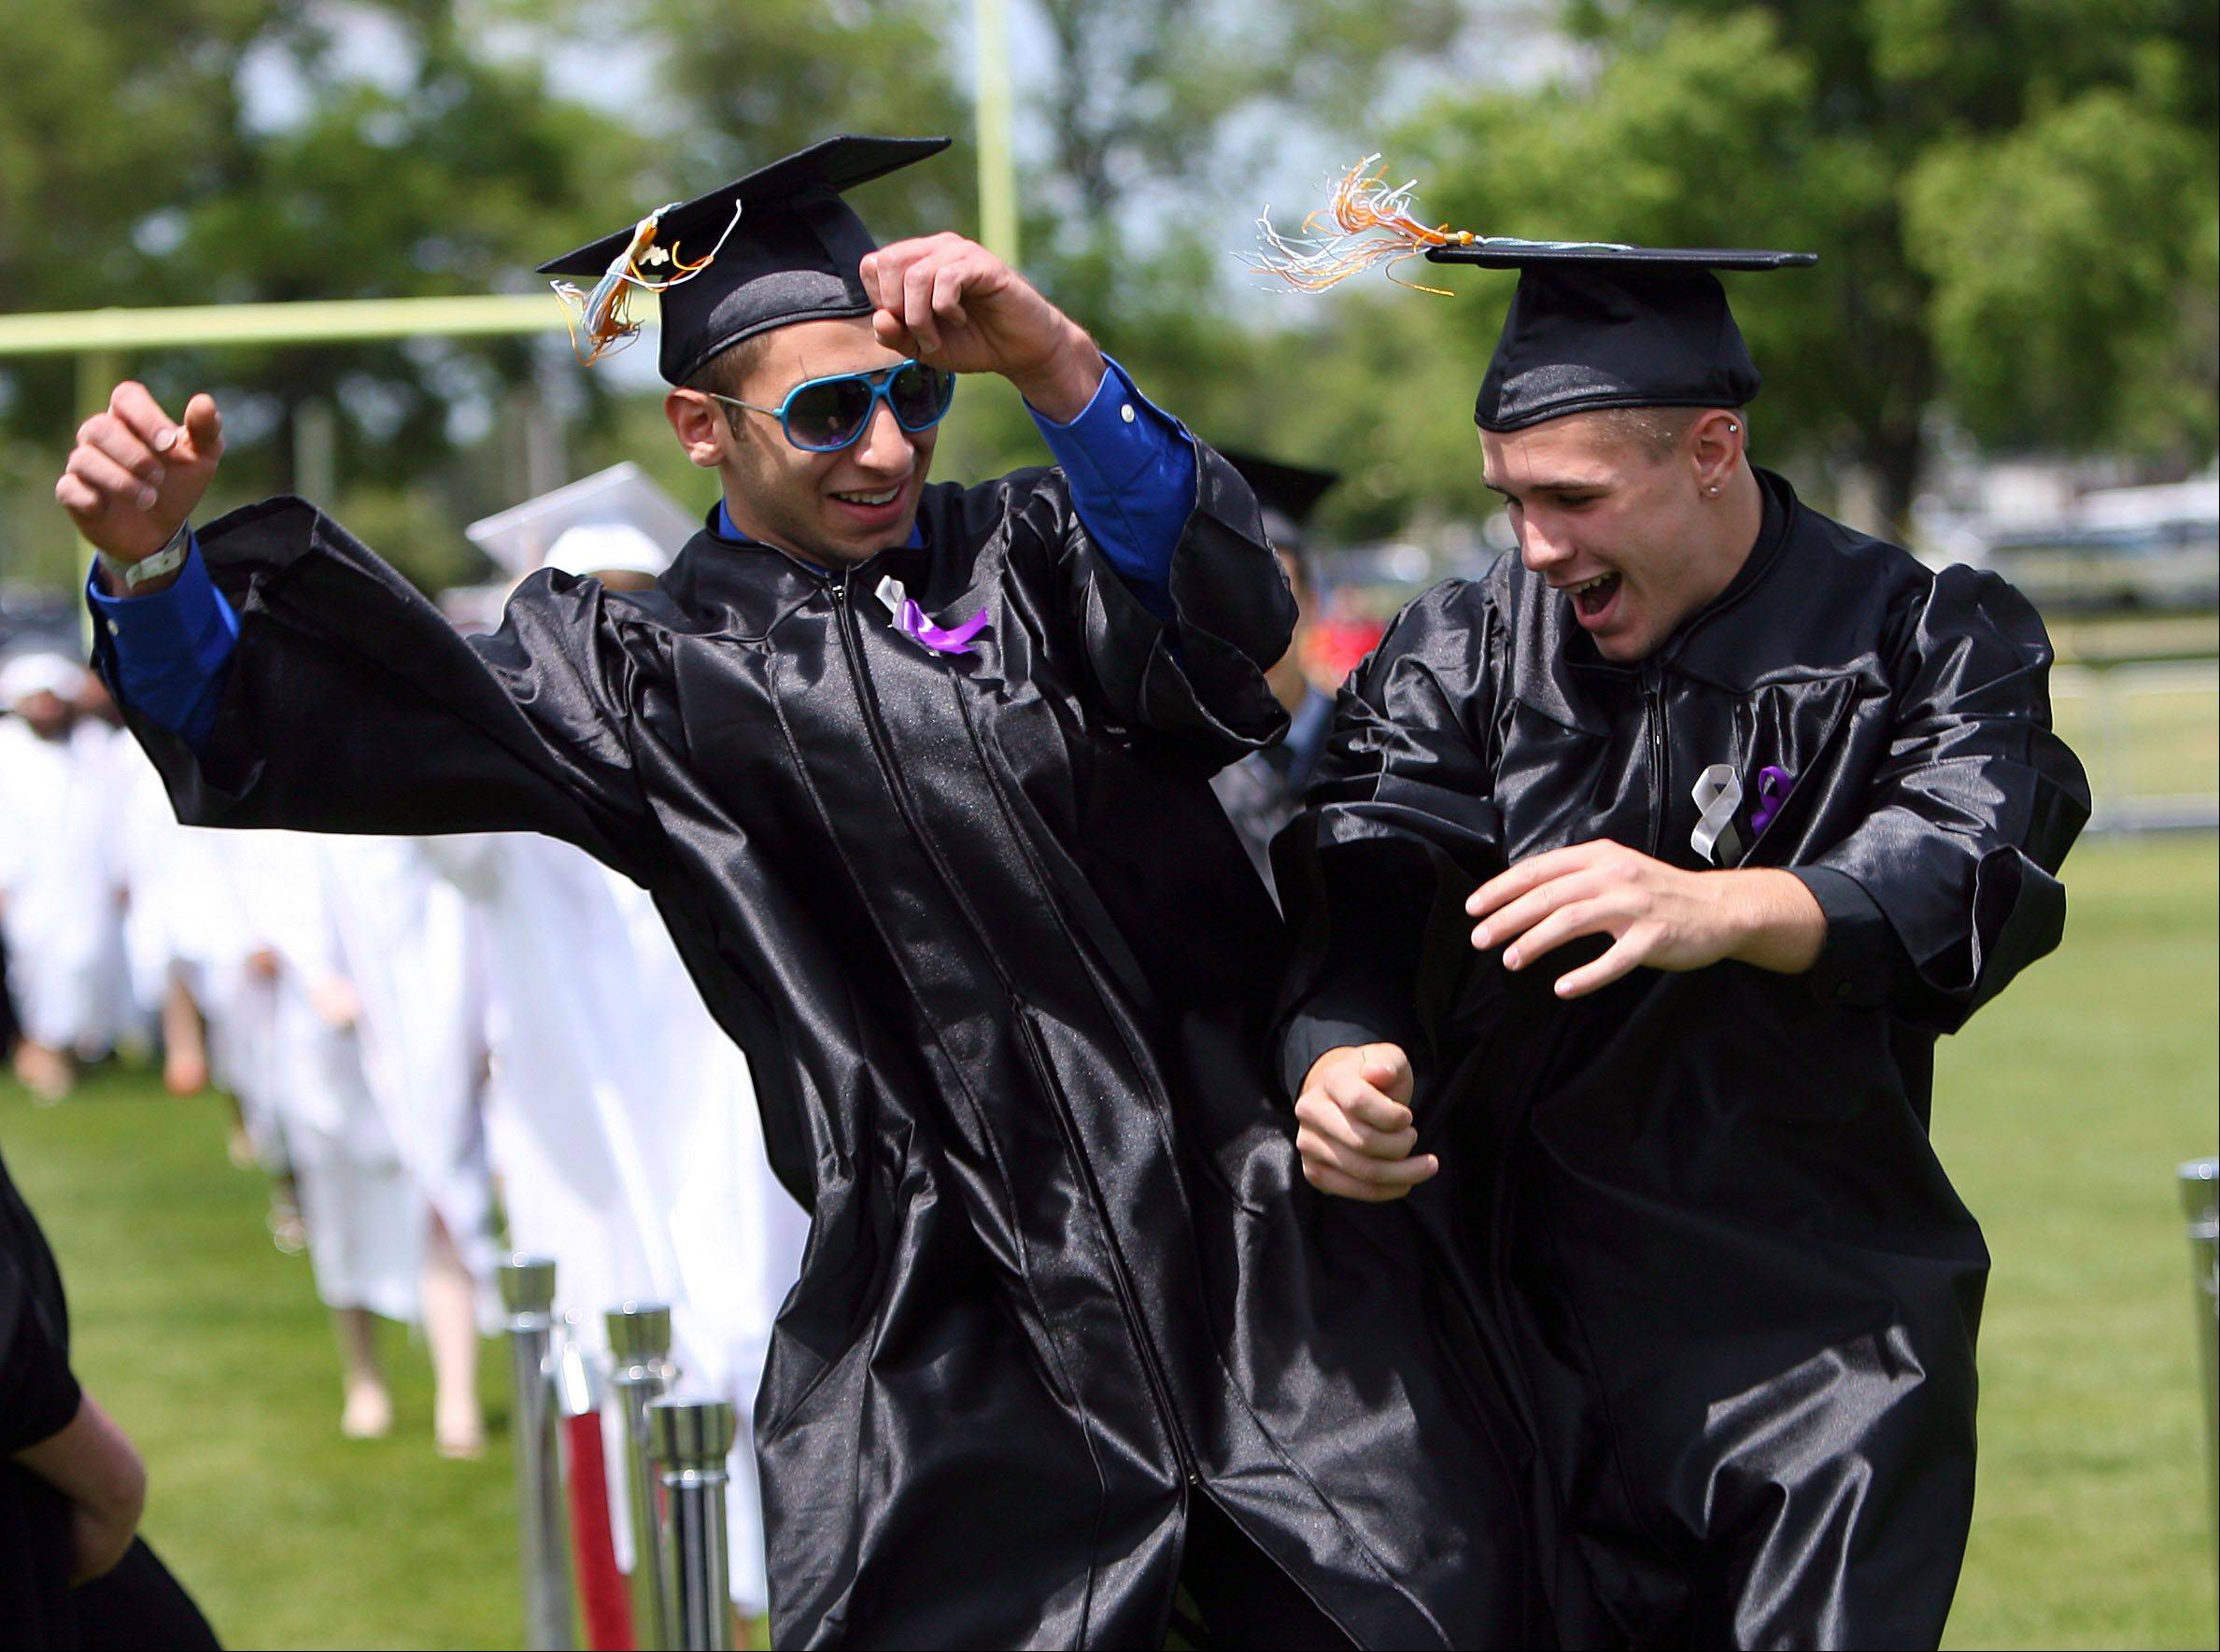 Jodan Pessah, left, and Steven Carlson celebrate as they enter the football field during the Maine West High School graduation ceremony Sunday in Des Plaines.